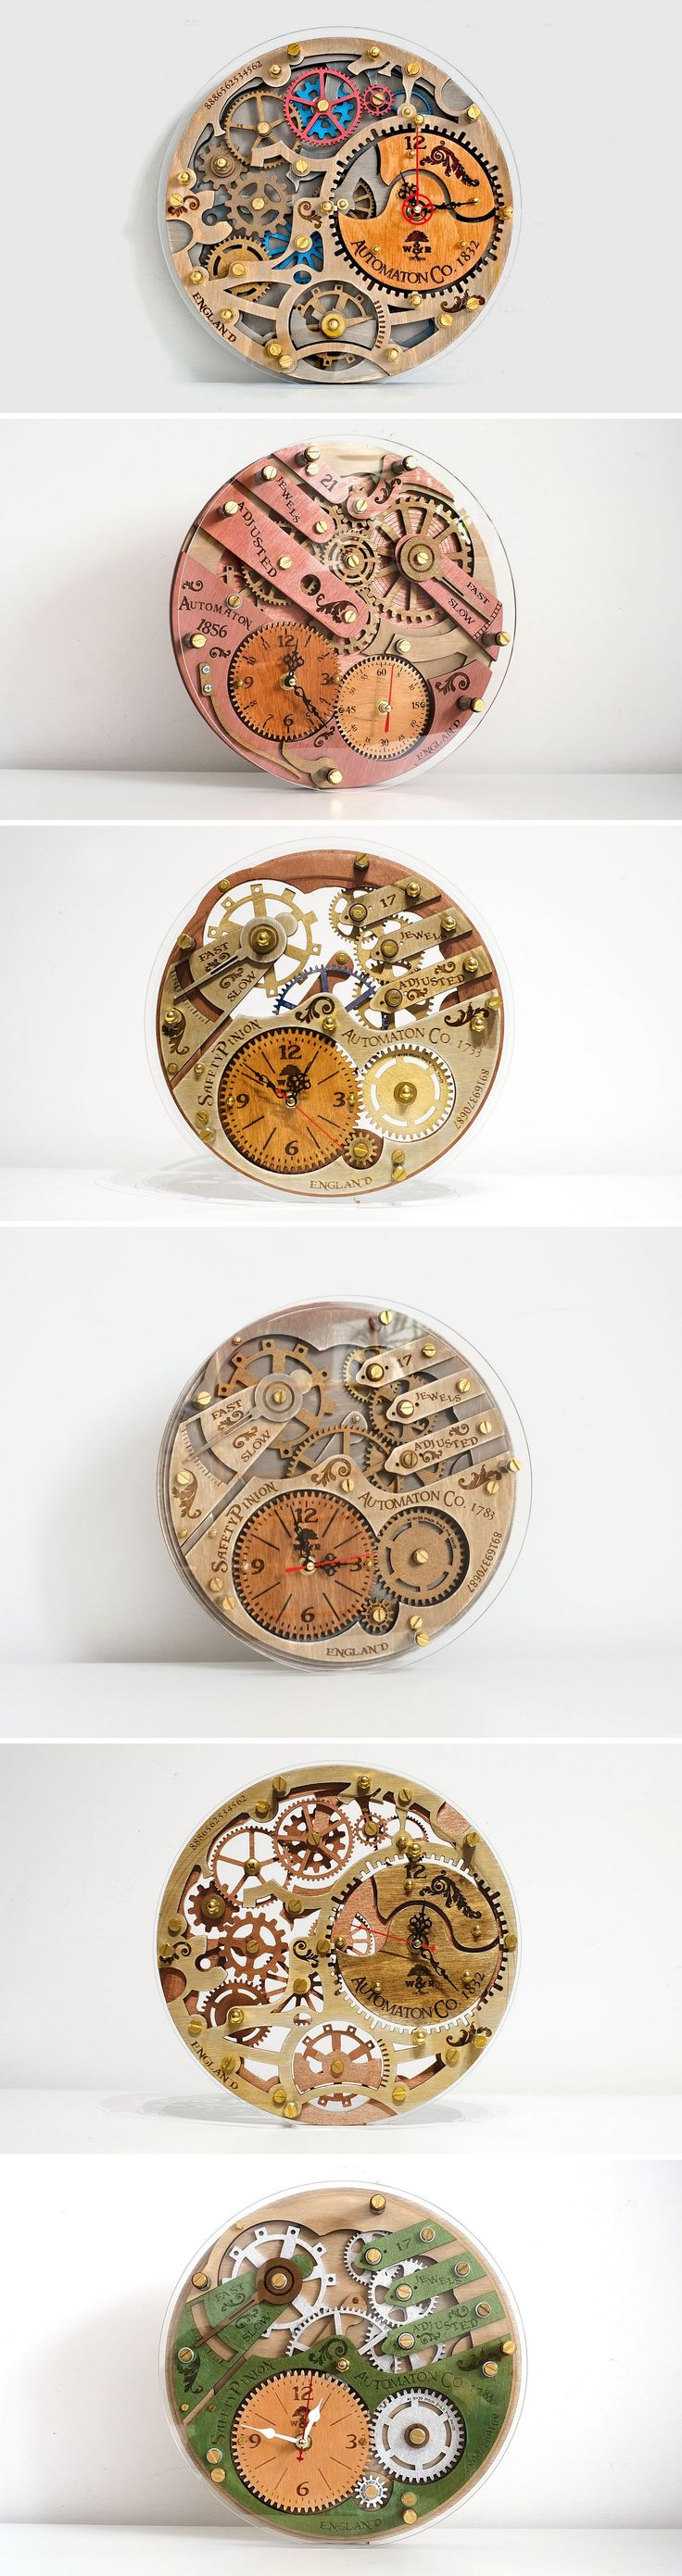 Wooden Steampunk Clock | Настенные часы https://www.livemaster.ru/wood-and-root